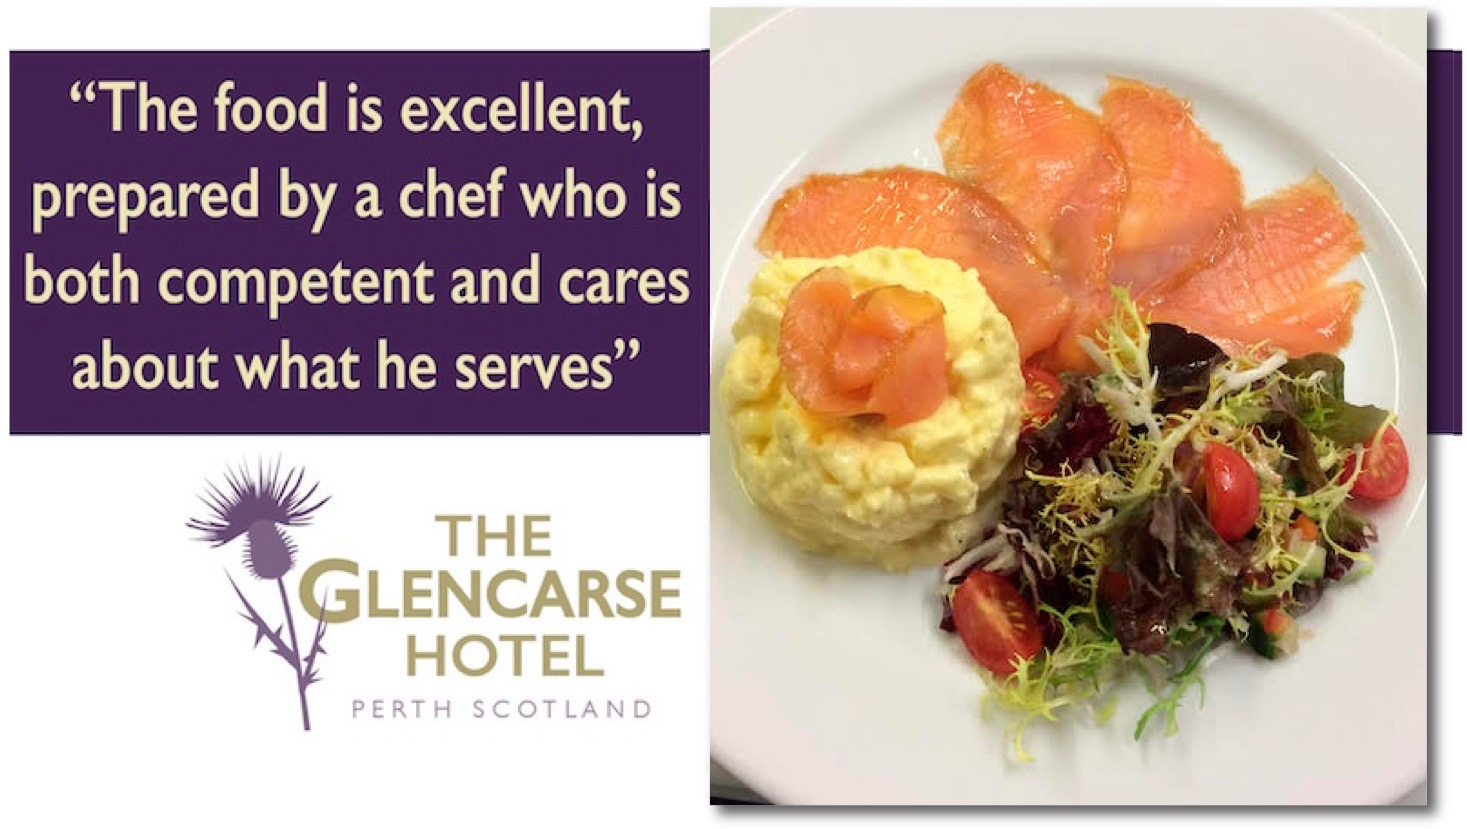 Glencarse Hotel near Perth, Scotland offers excellent lunch and evening meals